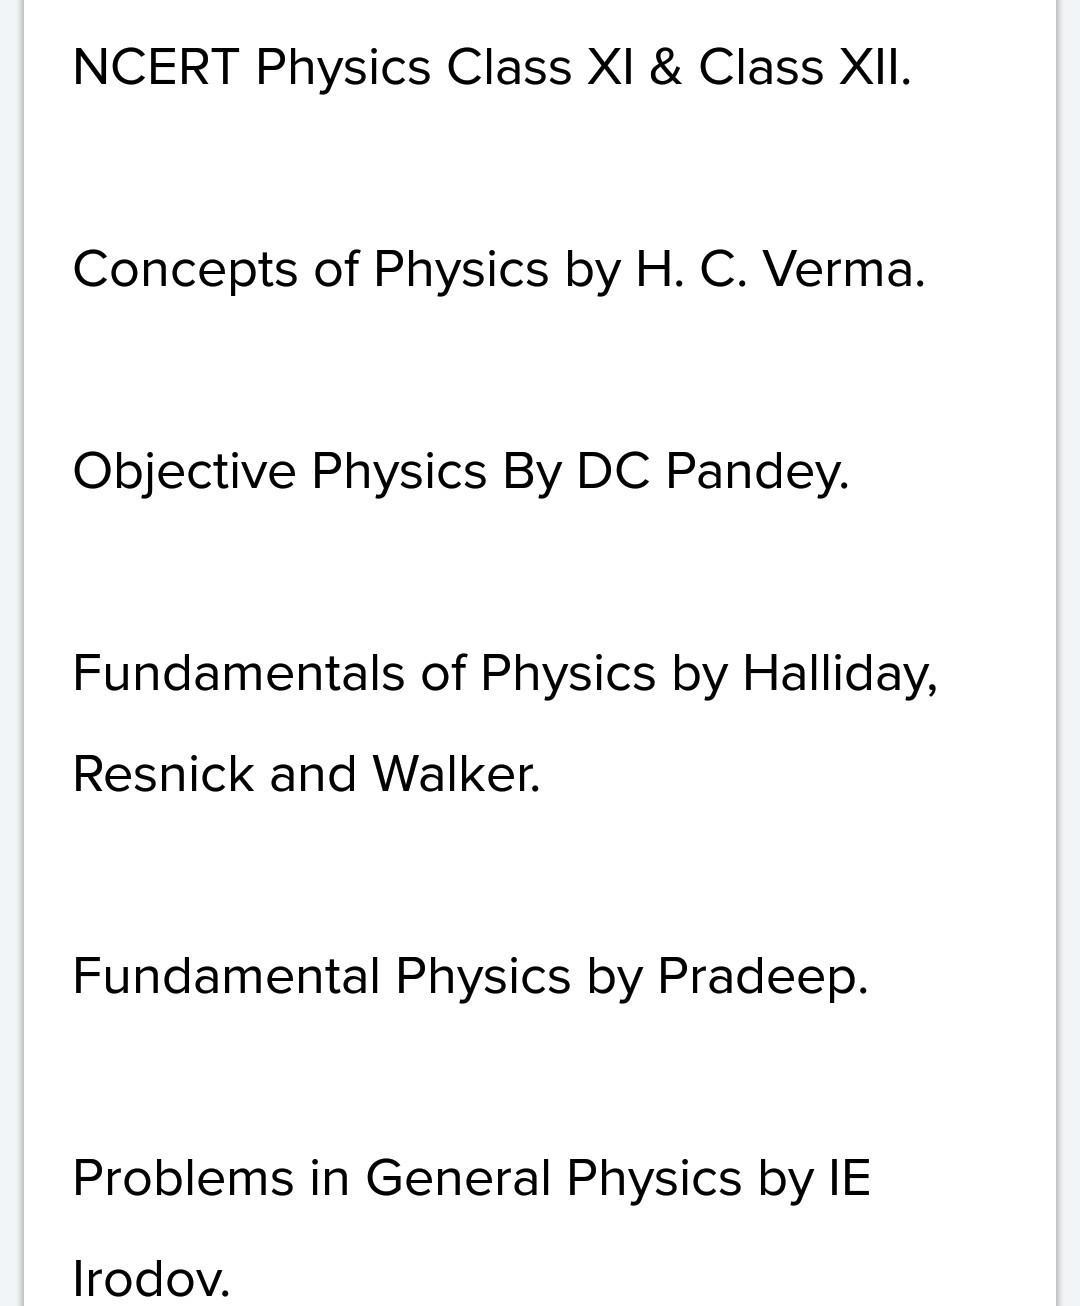 Any experienced guy,suggest the books for NEET 2020 for self study